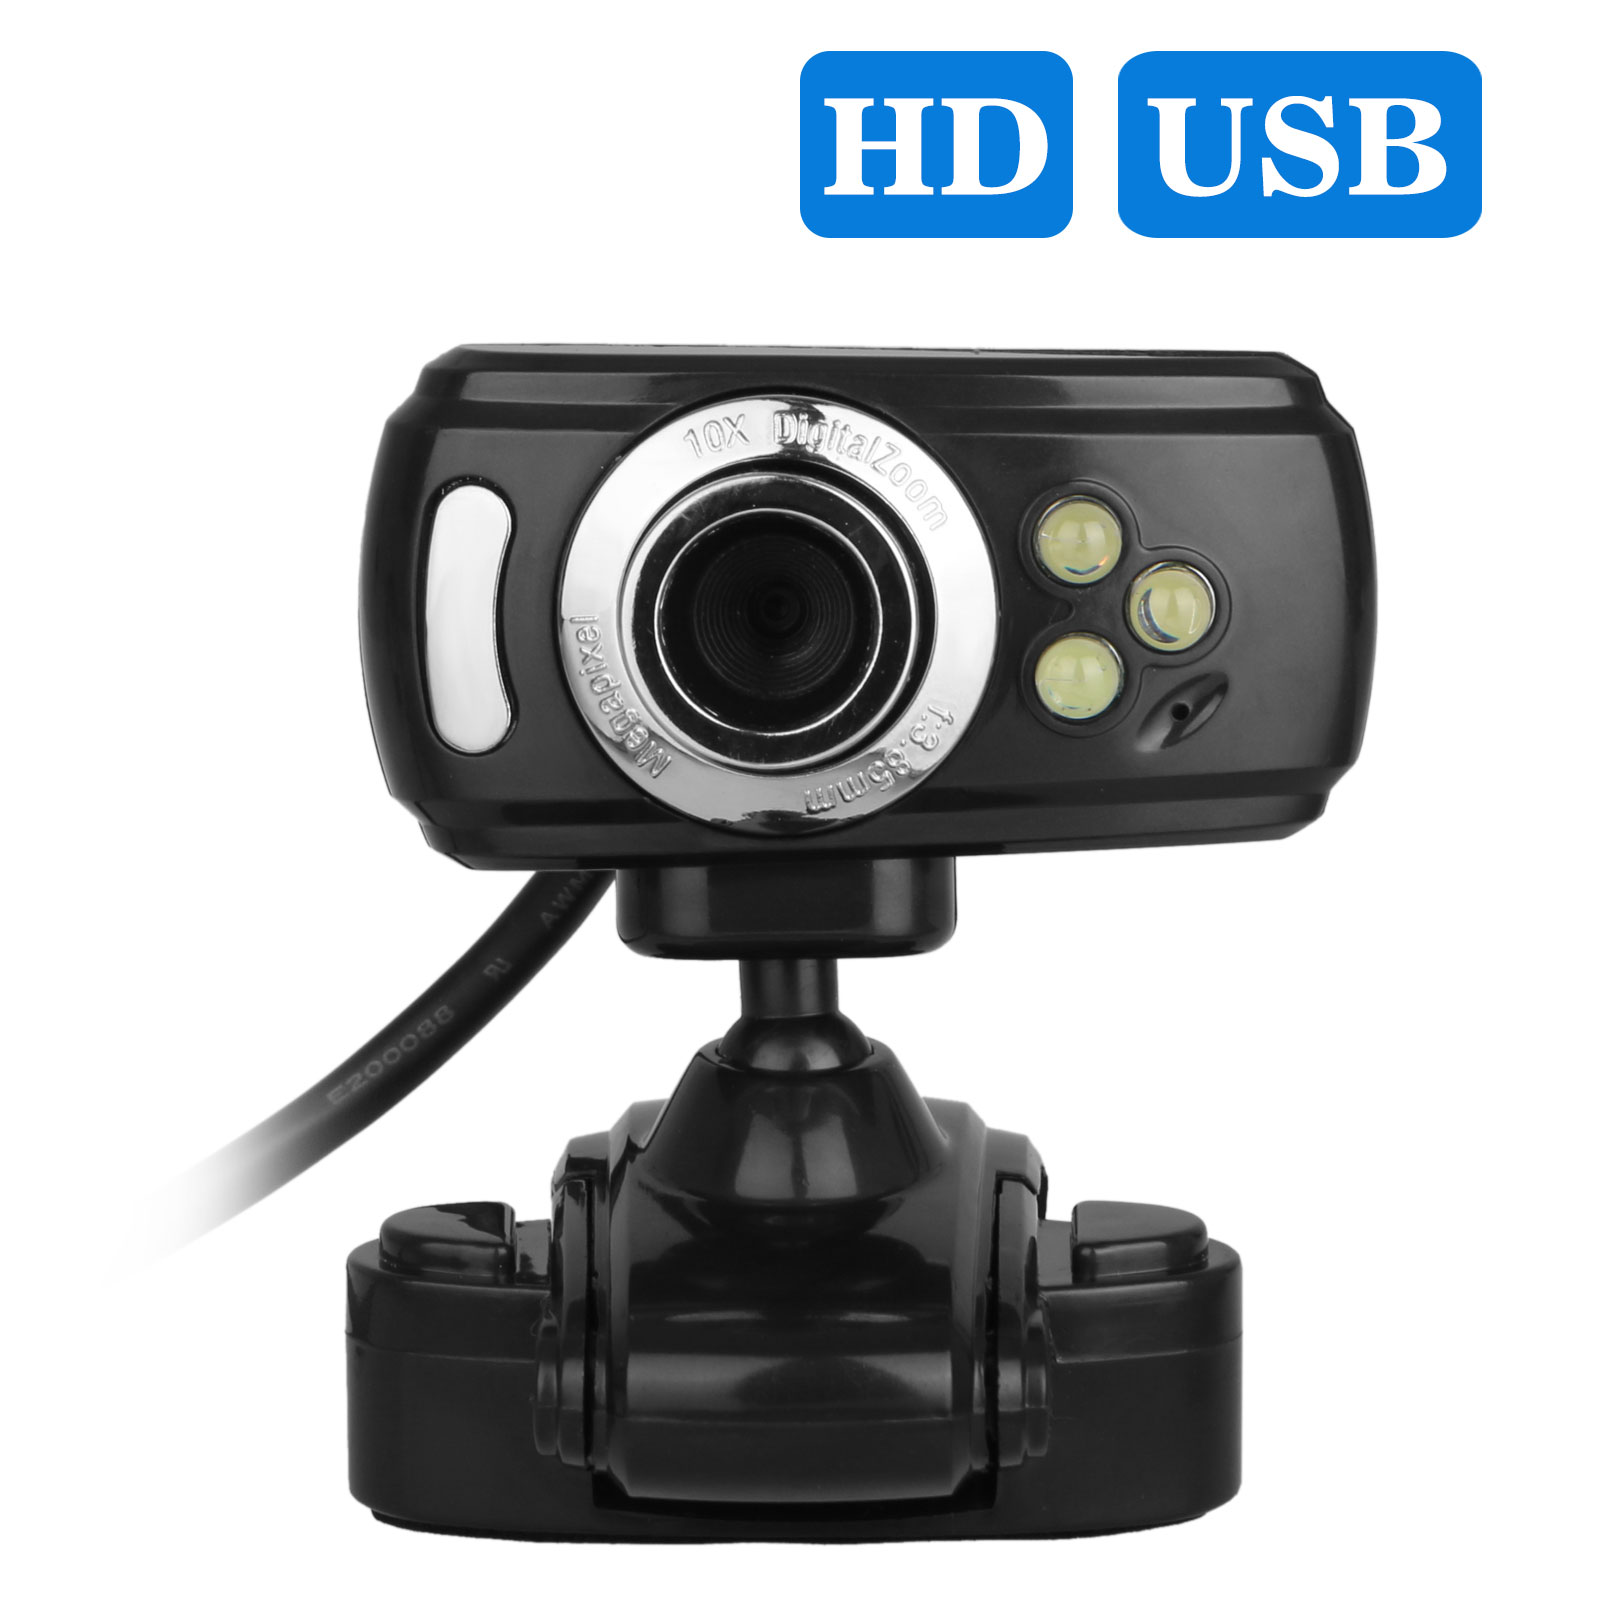 EEEkit Full HD 1080p Webcam, OBS Live Streaming Webcam , Computer Camera with Microphone for Skype Twitch YouTube Facebook, Compatible for Windows 10/8/ 7/98 / Me / 2000 / NT / XP / Vista 32bit